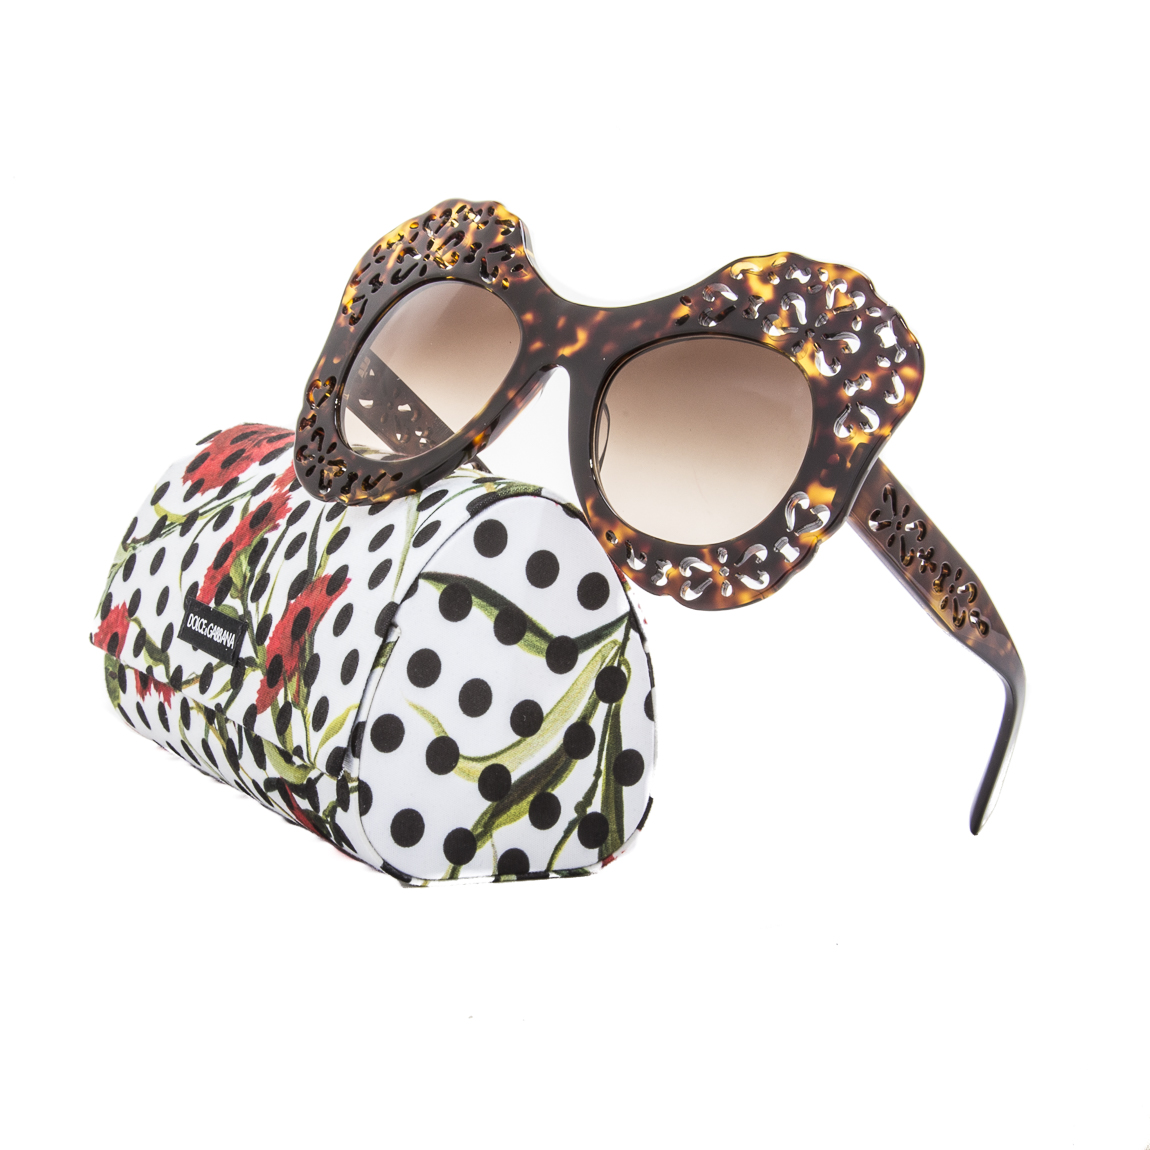 8ca9480a28cb Details about Dolce   Gabbana 4256 Sunglasses 502 13 Dark Havana - Spain  Italy LIMITED EDITION